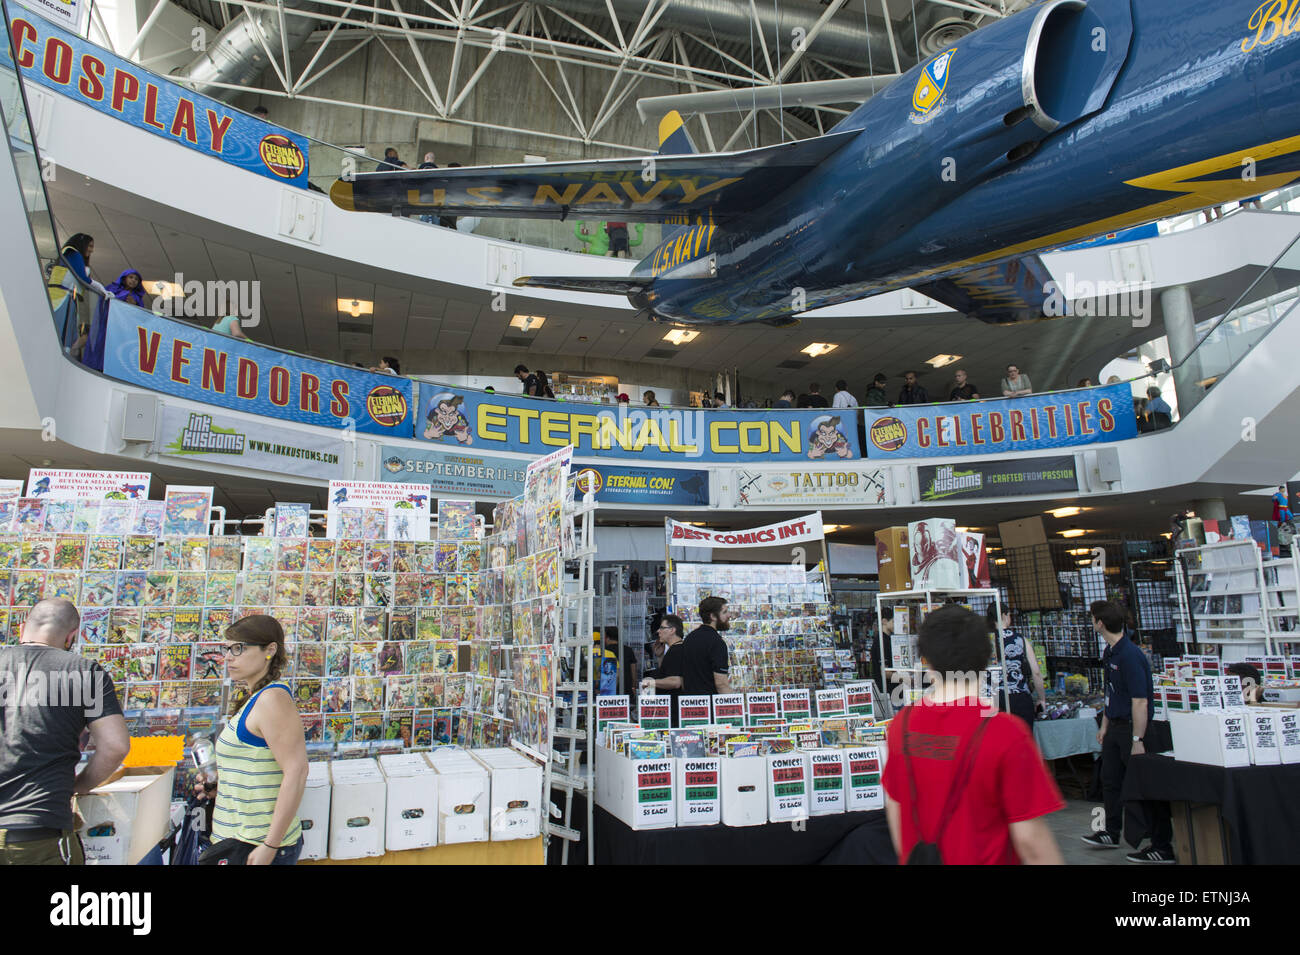 Garden City, New York, USA. 14th June, 2015. at Eternal Con, the Long Island Comic Con, at the Cradle of Aviation - Stock Image